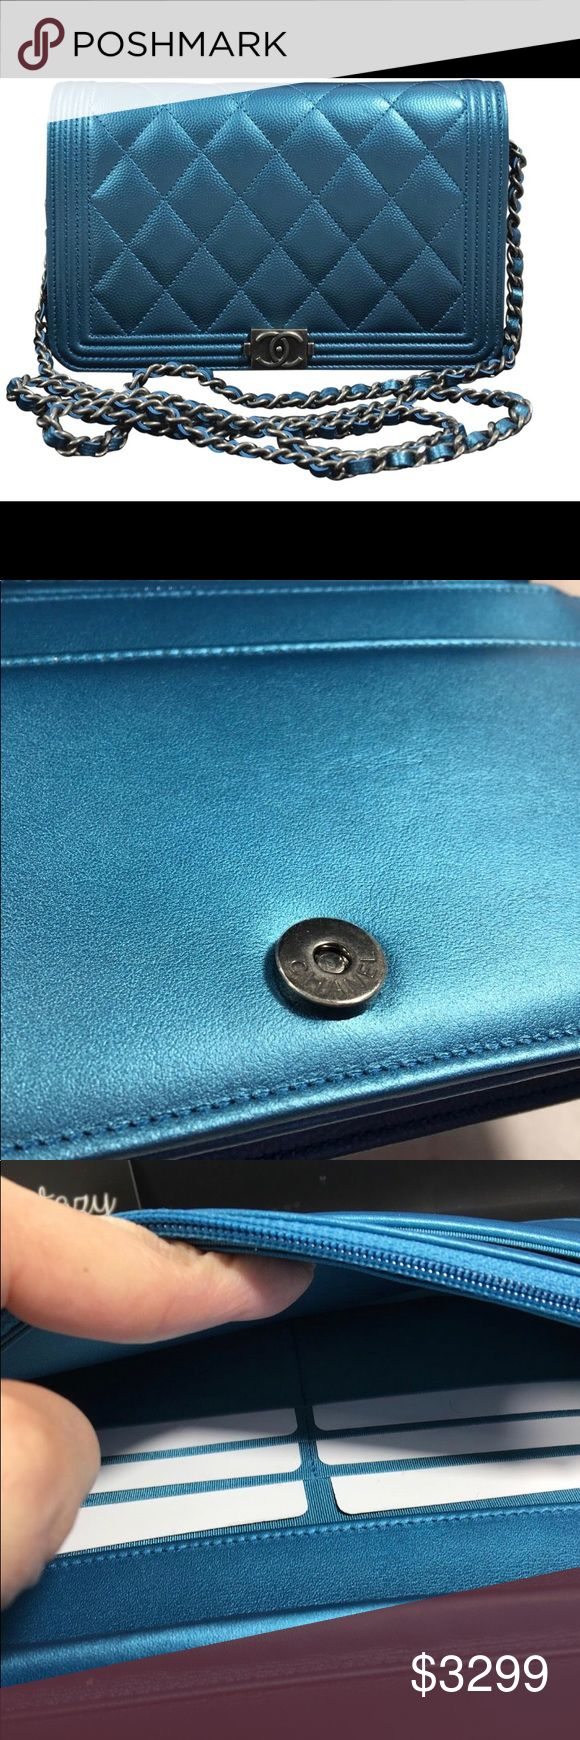 """Authentic Chanel Boy WOC Crossbody in blue! NIB! Brand new Chanel in box. 100 percent authentic! Stunning popular color! This pops! 7.5"""". Crossbody chain. Comes with box, dustbag, Card. CHANEL Bags Crossbody Bags"""